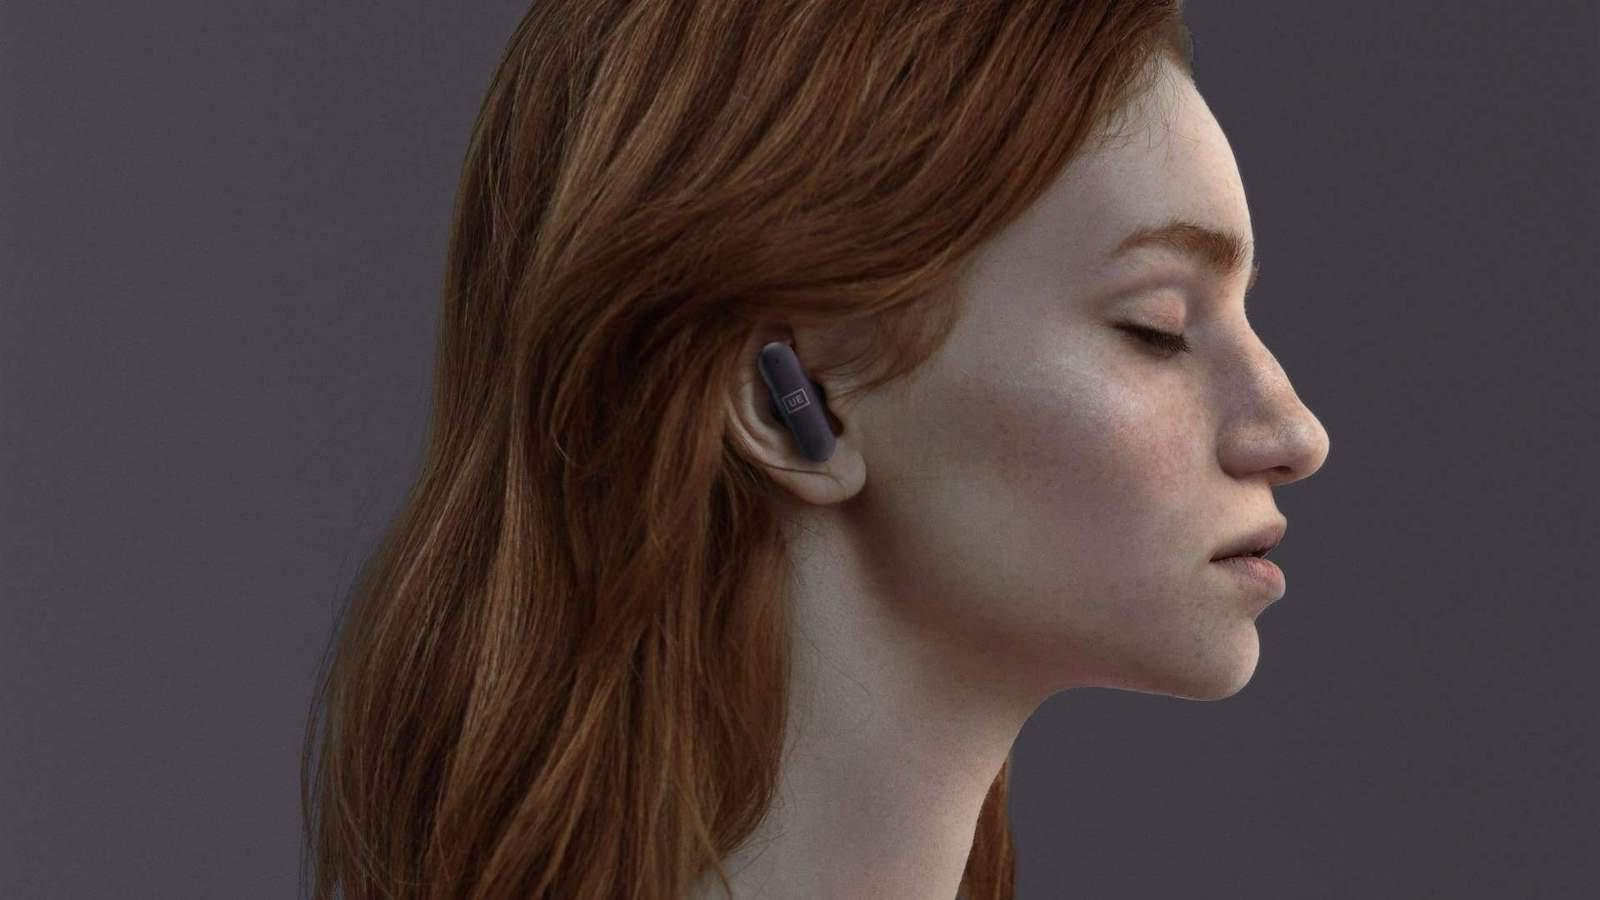 UE FITS Earphone on woman